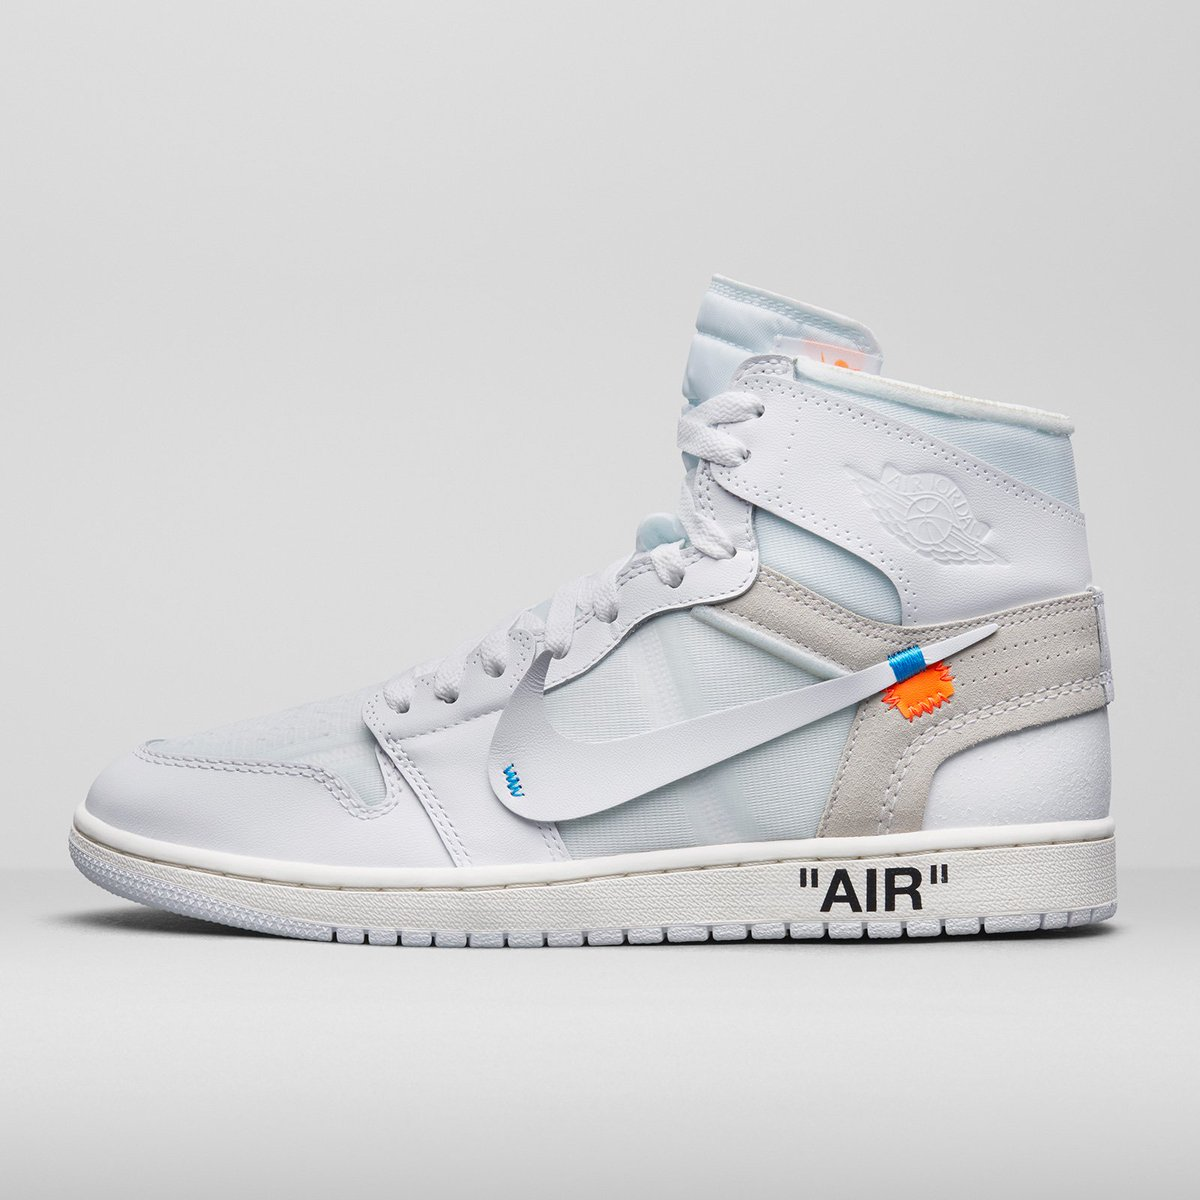 60 signature Air Jordan 1s were released in 2018 - these are